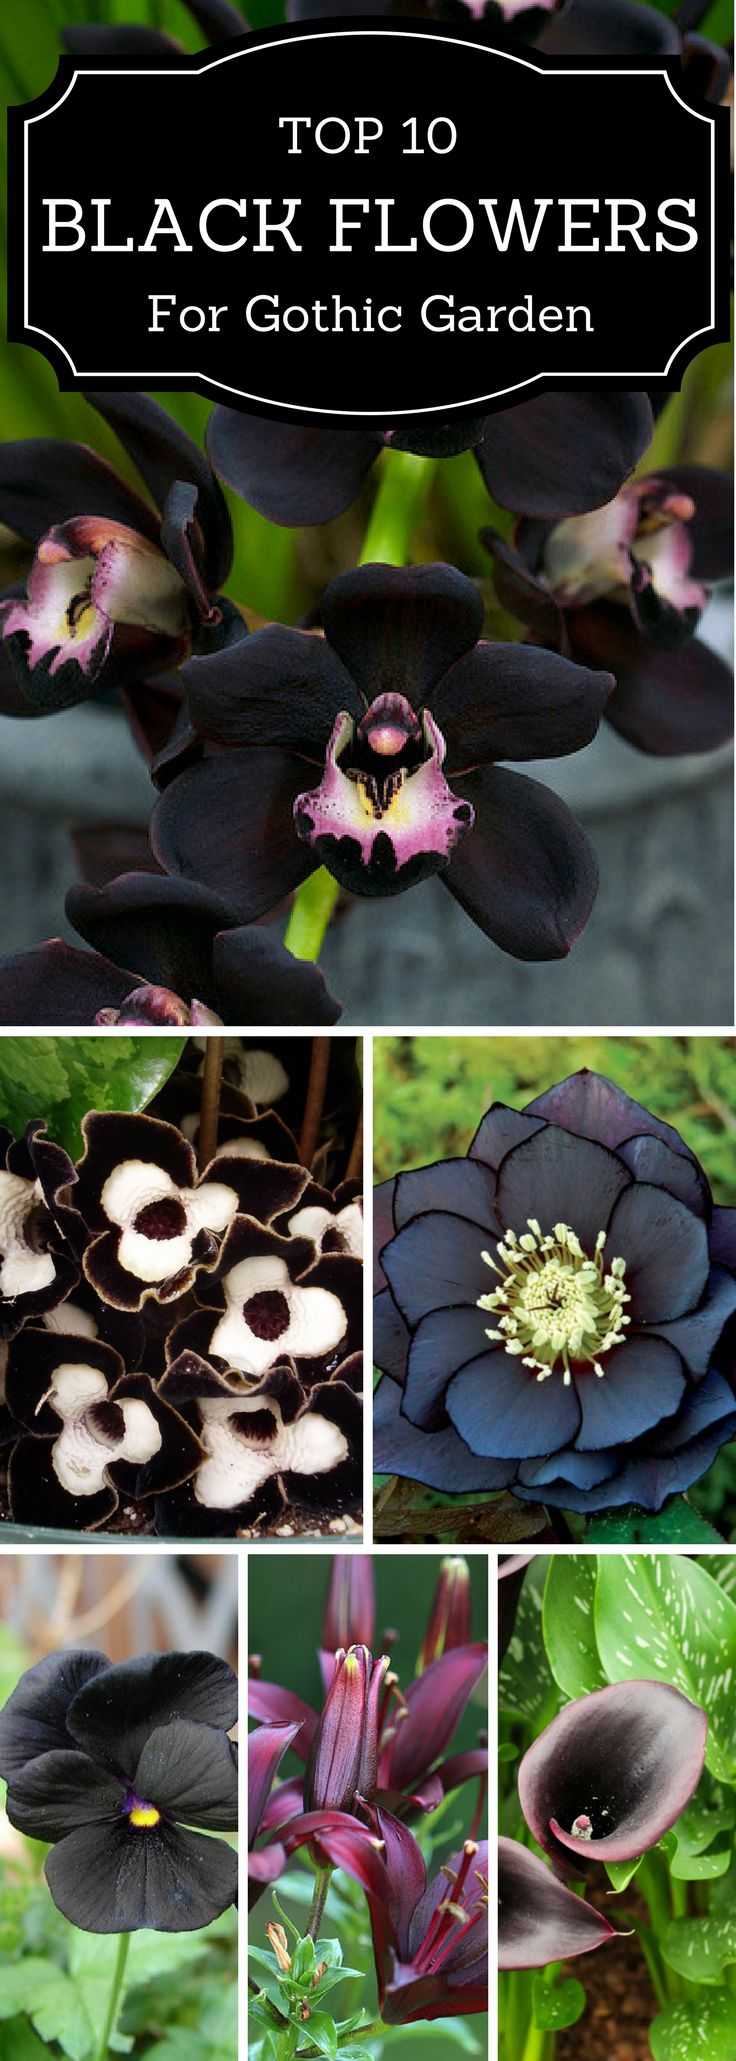 Plants with black foliage or black flowers. Slide show